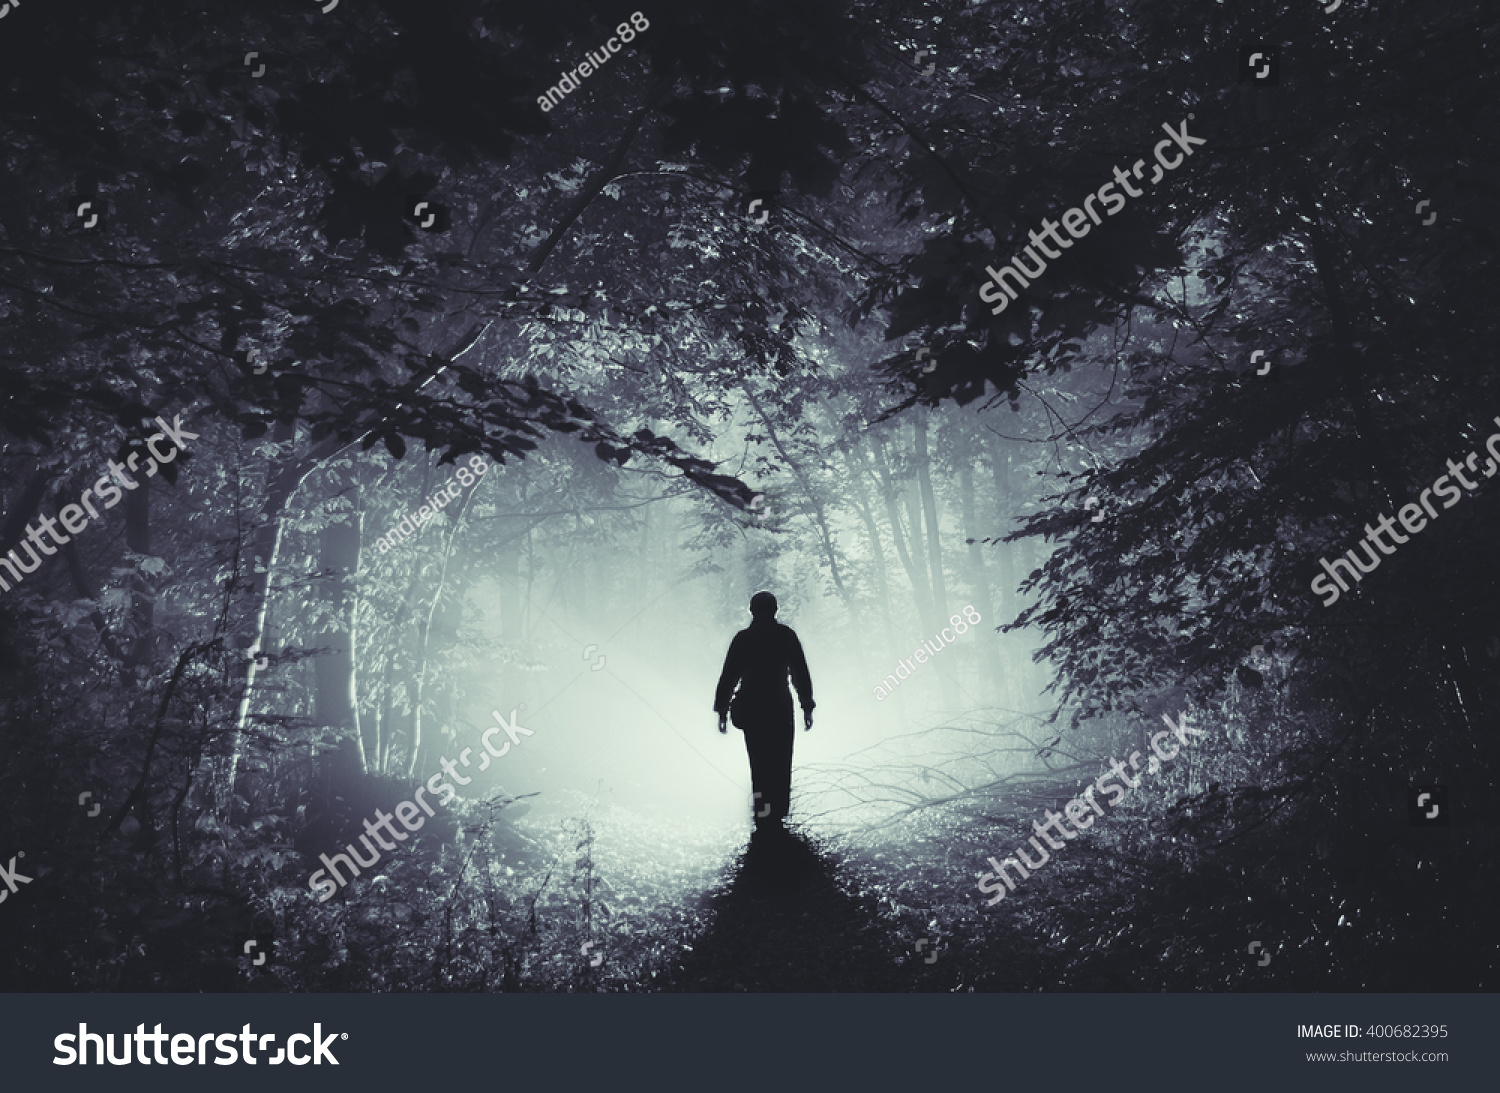 Not to be completely negative about this episode, i did like the background renderings on fisto's part of the forest. Surreal Light Dark Forest Man Silhouette Stock Photo Edit Now 400682395